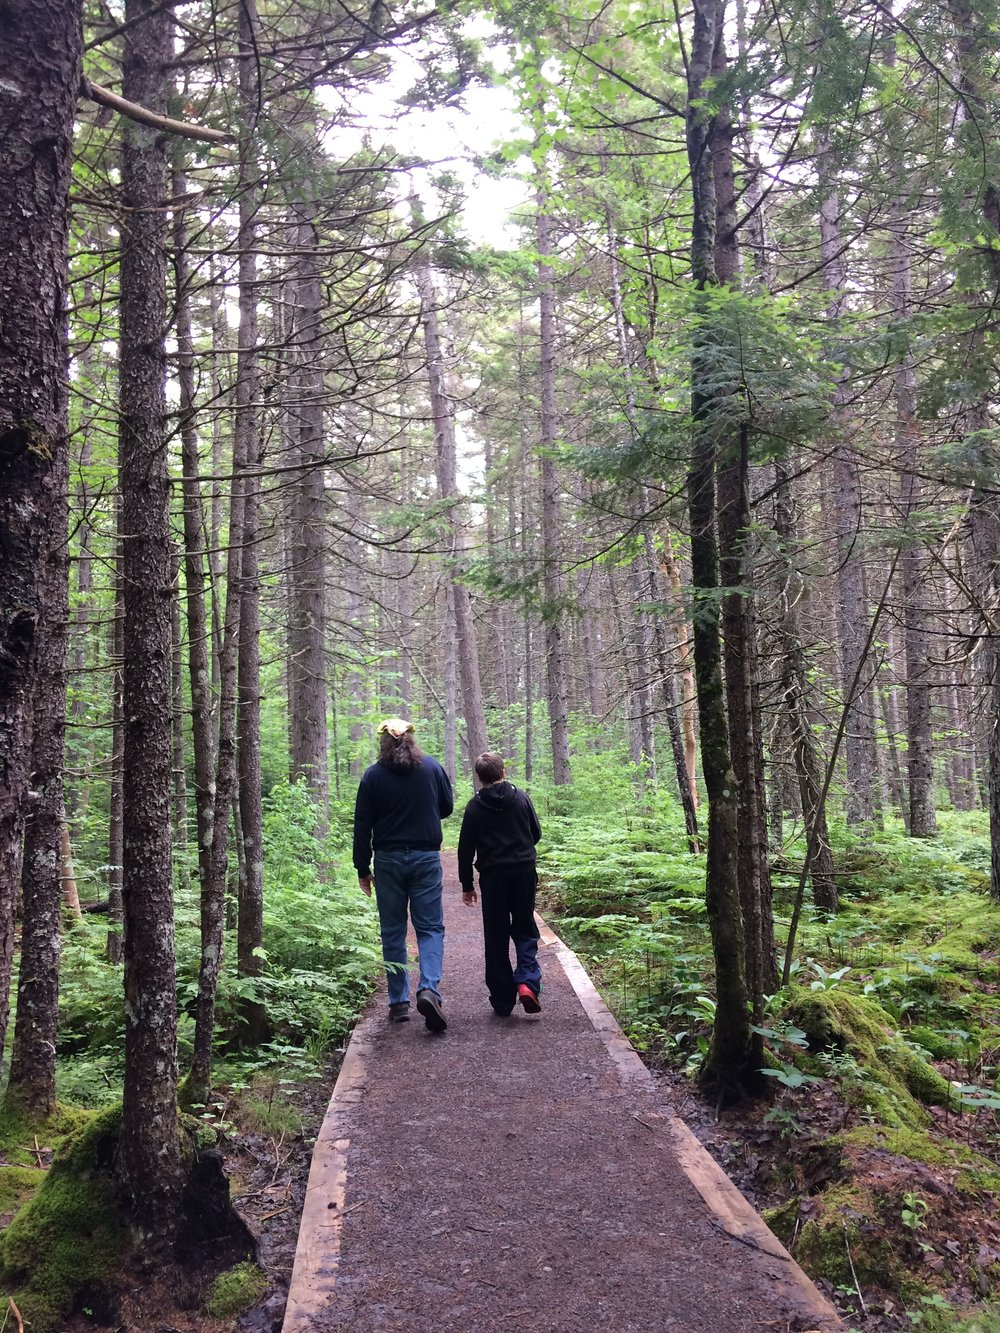 The trail to Helldiver Pond was my favorite. Smelled of balsam and the forest was beautiful.